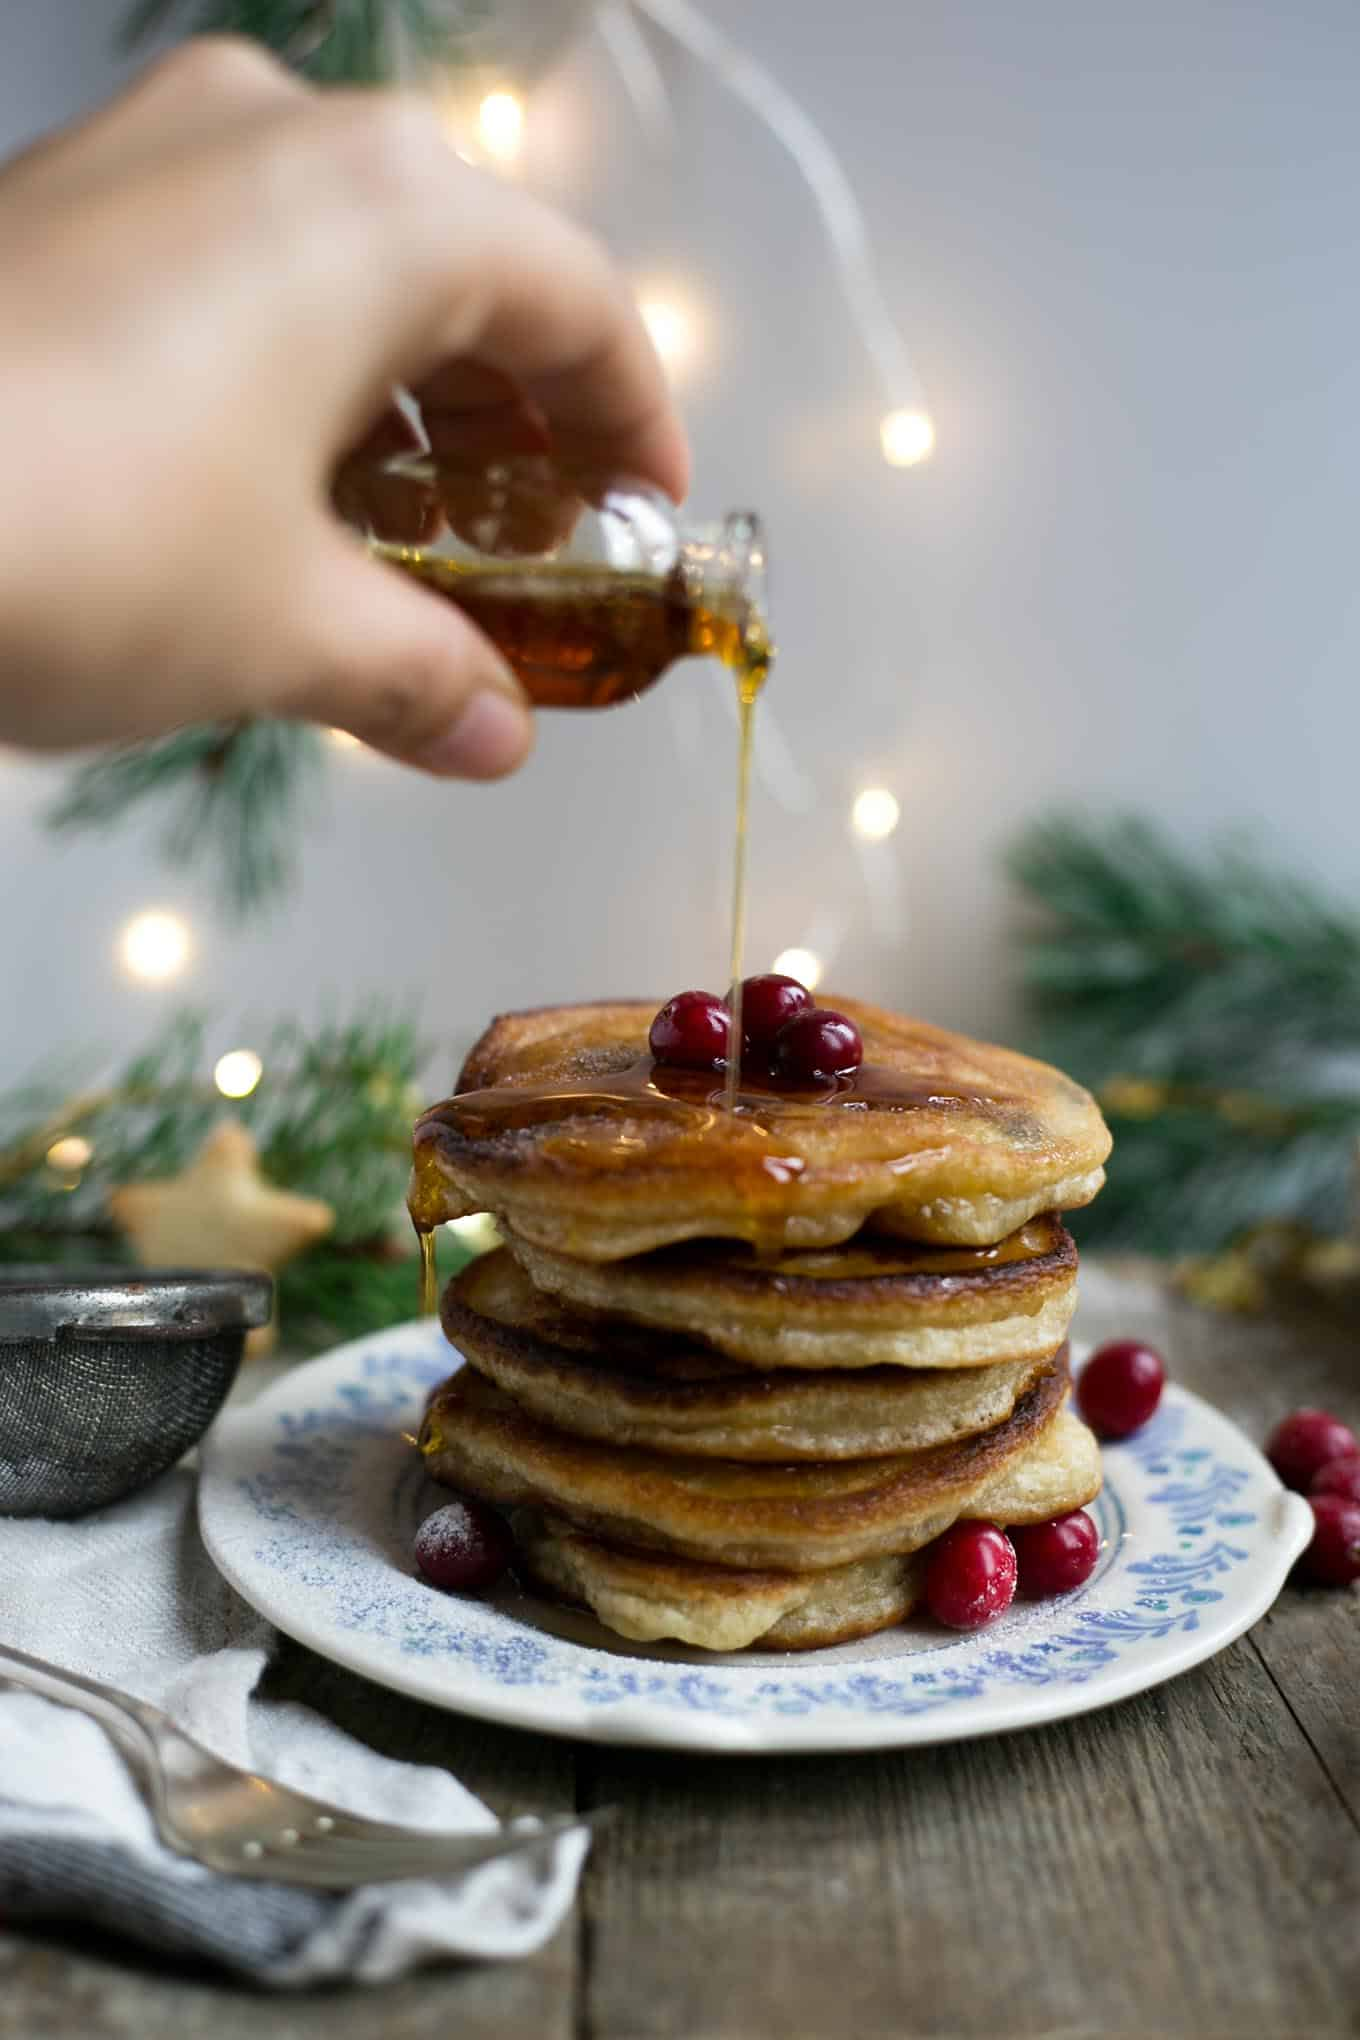 Rum & raisin pancakes, ultimate breakfast for #Christmas morning! #vegan #dairyfree #pancakes | via @annabanana.co